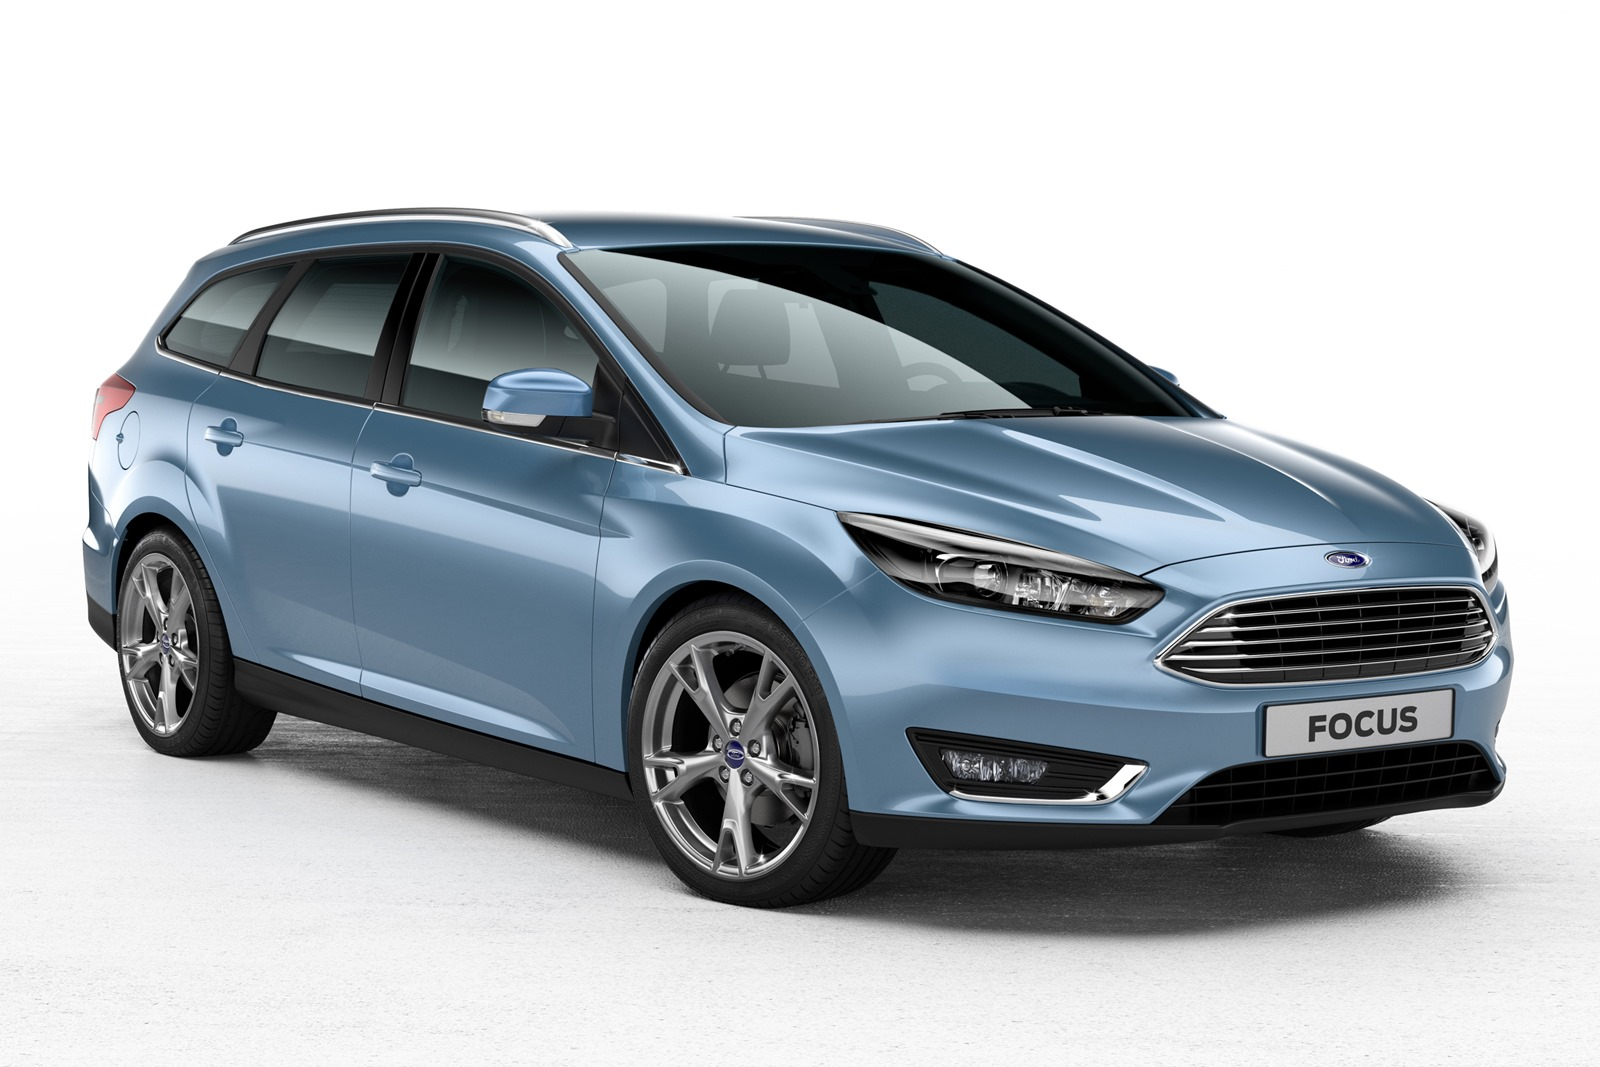 ford focus wagon ii 2015 images